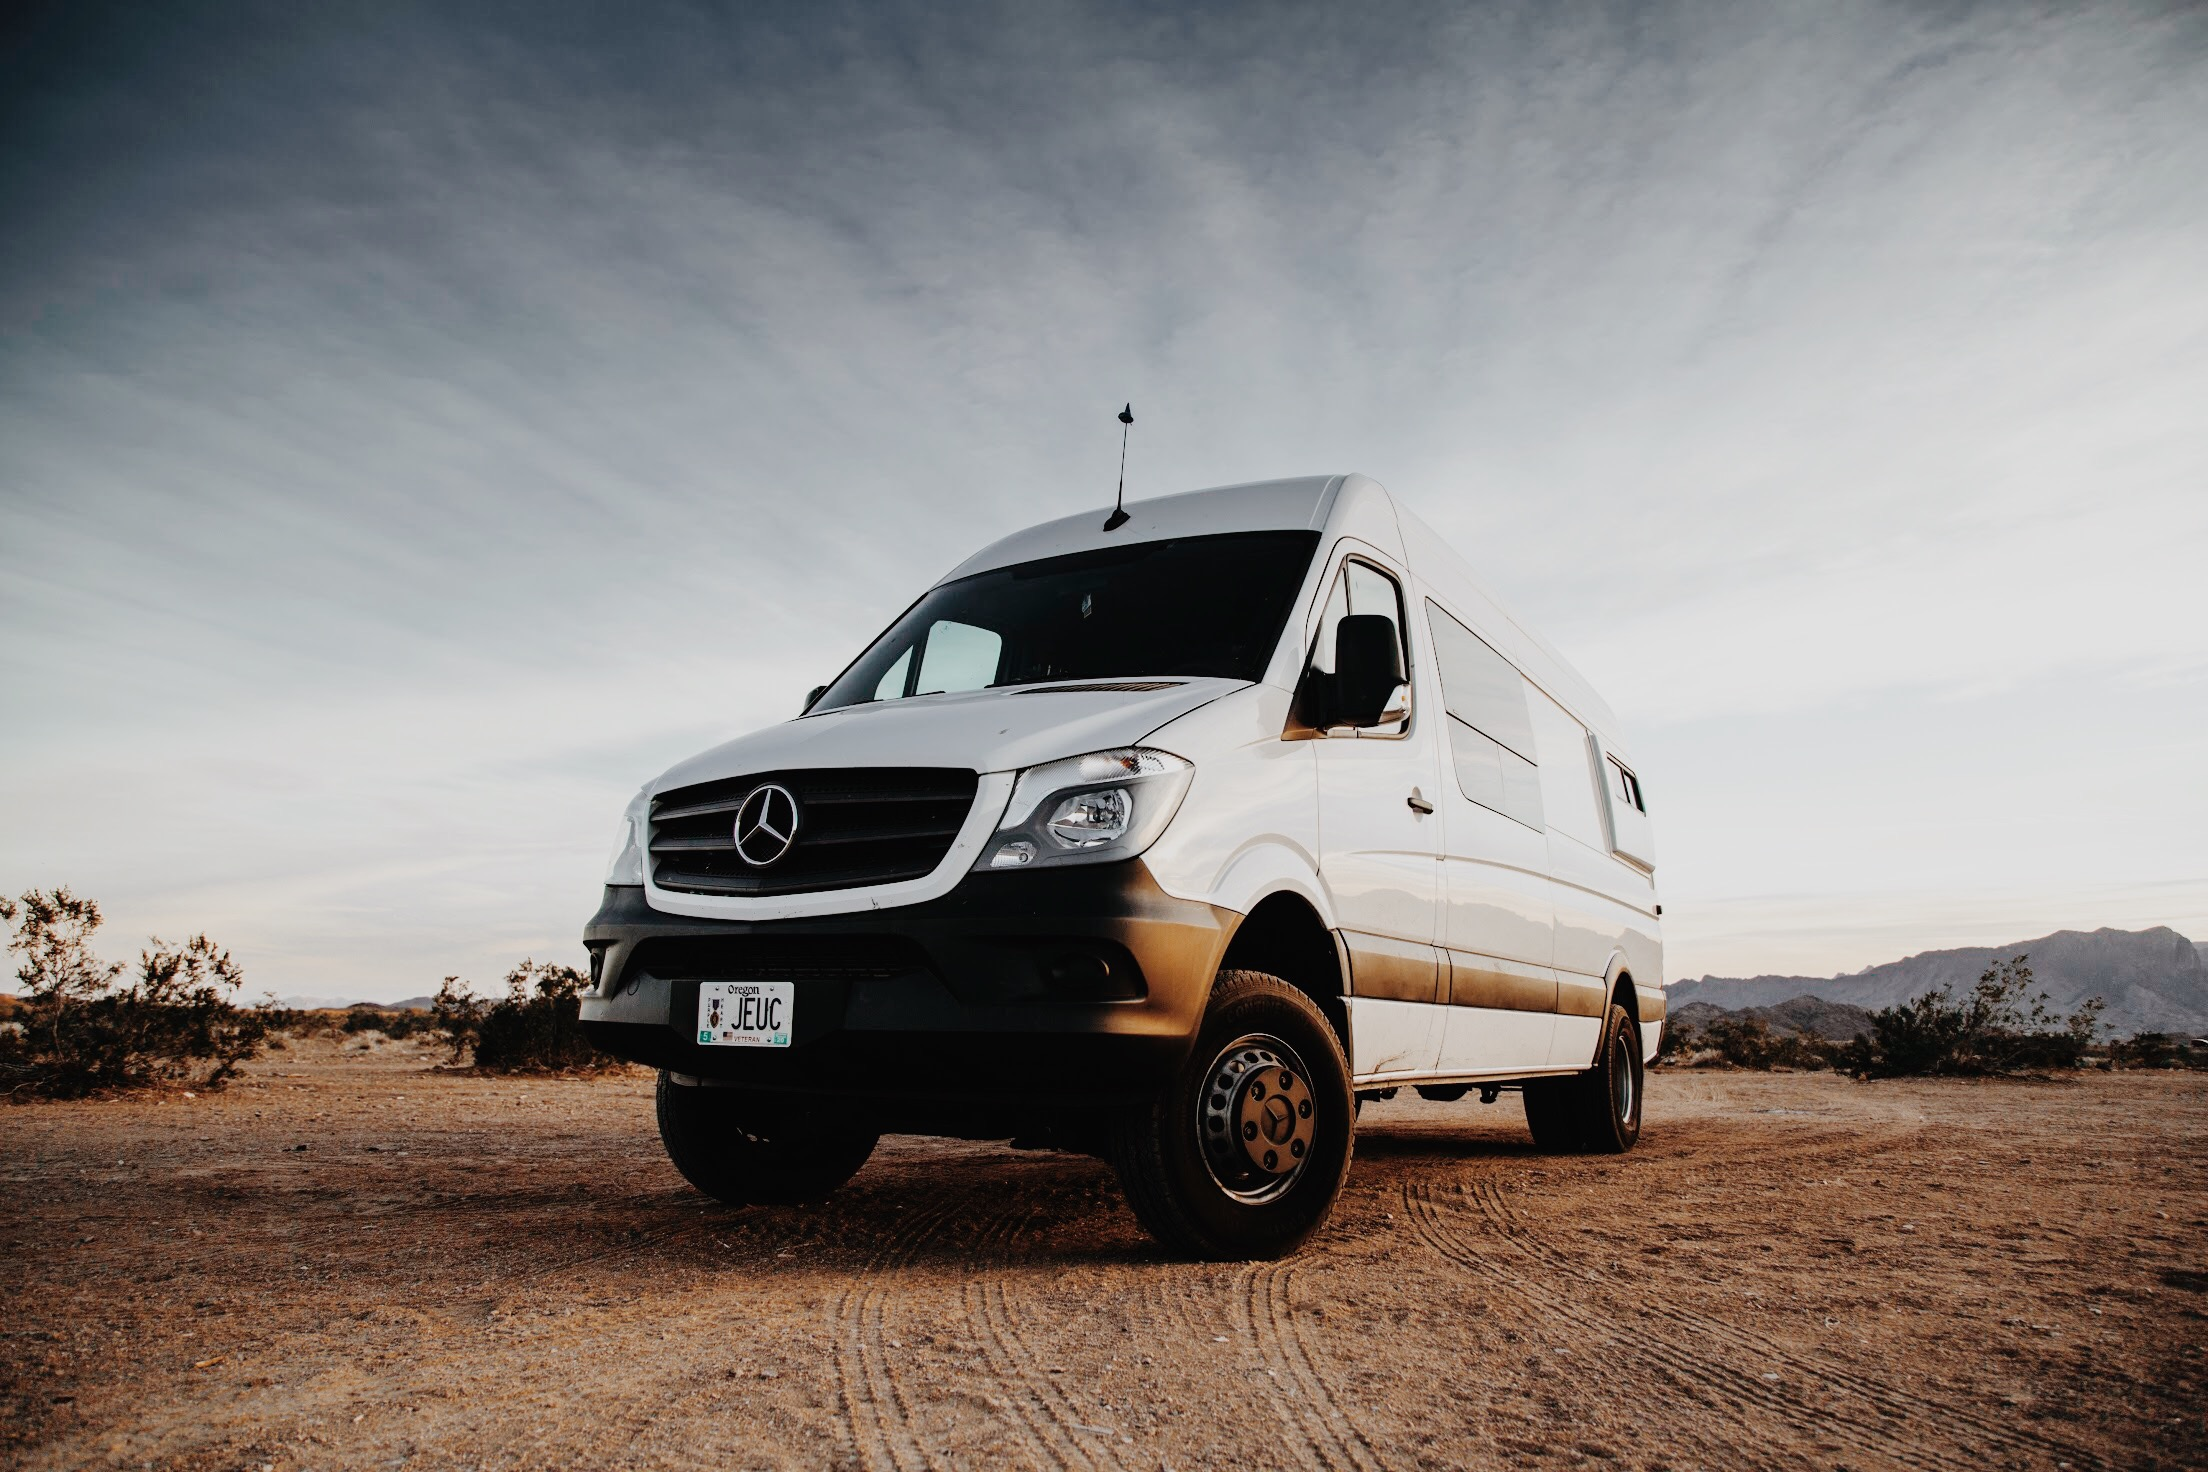 How Much Does It Cost To Convert A Sprinter Van - 2018 ...  Freightliner Sprinter Wiring Diagrams on freightliner wiring help, freightliner starter diagram, freightliner steering diagram, freightliner suspension diagram, freightliner electrical diagrams, freightliner fuse panel diagram, freightliner starter solenoid wiring, freightliner fuel system diagram, freightliner a c compressor diagram, freightliner cruise control diagram, freightliner columbia fuse box diagram, freightliner fuse box location, freightliner parts diagrams, freightliner relay diagram, freightliner air system diagram, 2007 freightliner columbia plug diagrams, freightliner truck diagram, freightliner ac diagram, freightliner schematics, freightliner air tank diagram,